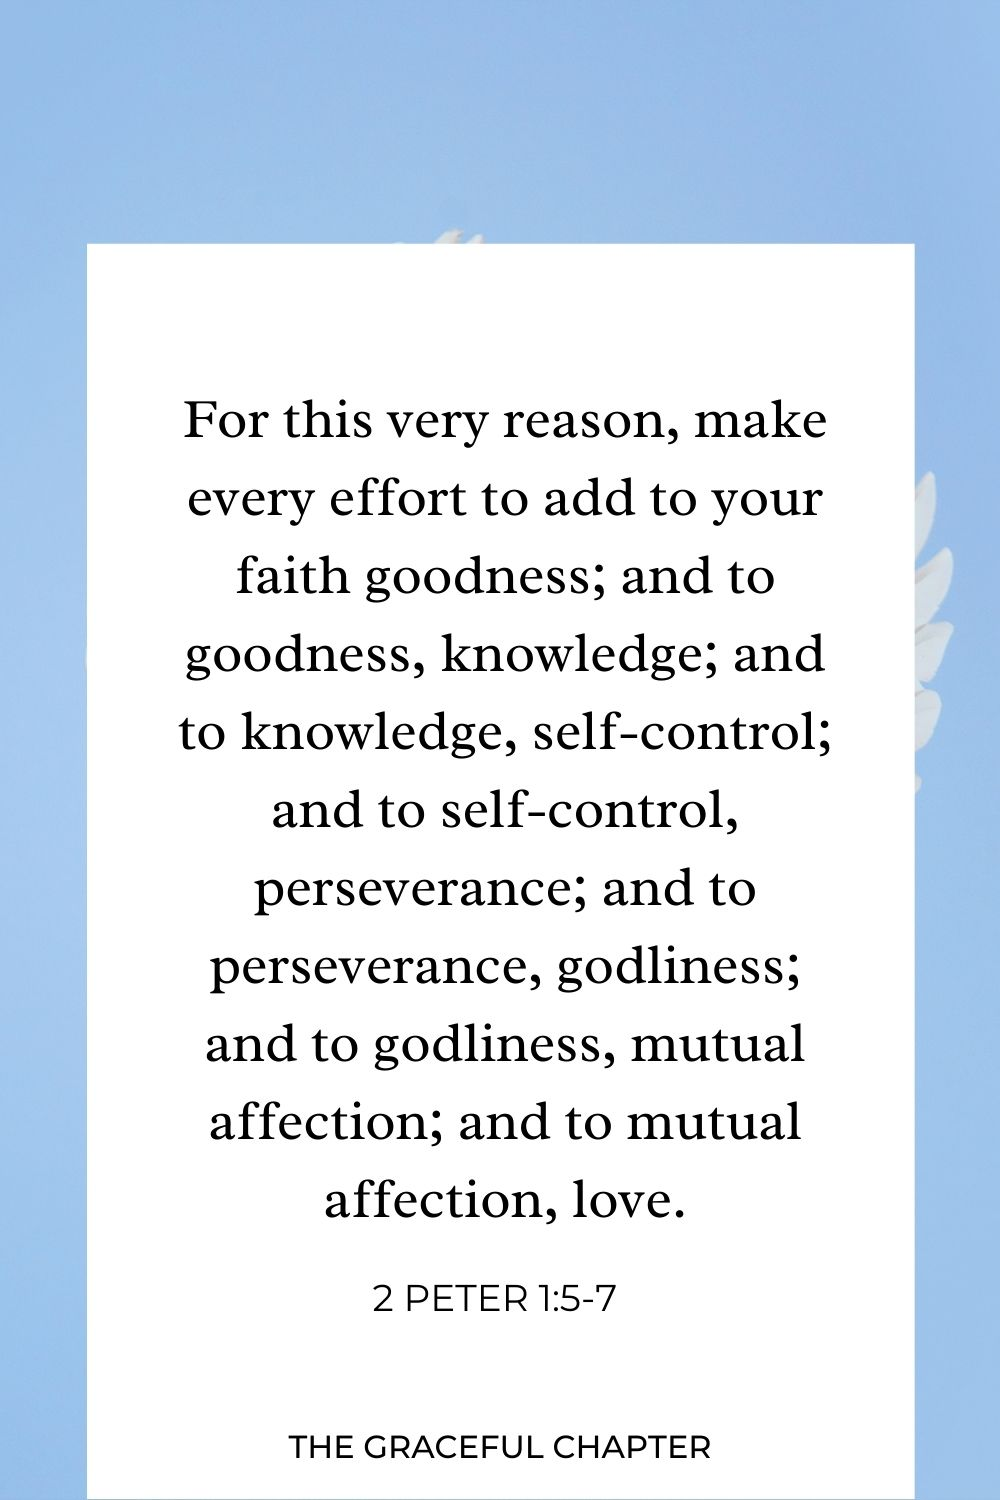 For this very reason, make every effort to add to your faith goodness; and to goodness, knowledge;  and to knowledge, self-control; and to self-control, perseverance;  and to perseverance, godliness;  and to godliness, mutual affection; and to mutual affection, love. 2 Peter 1:5-7